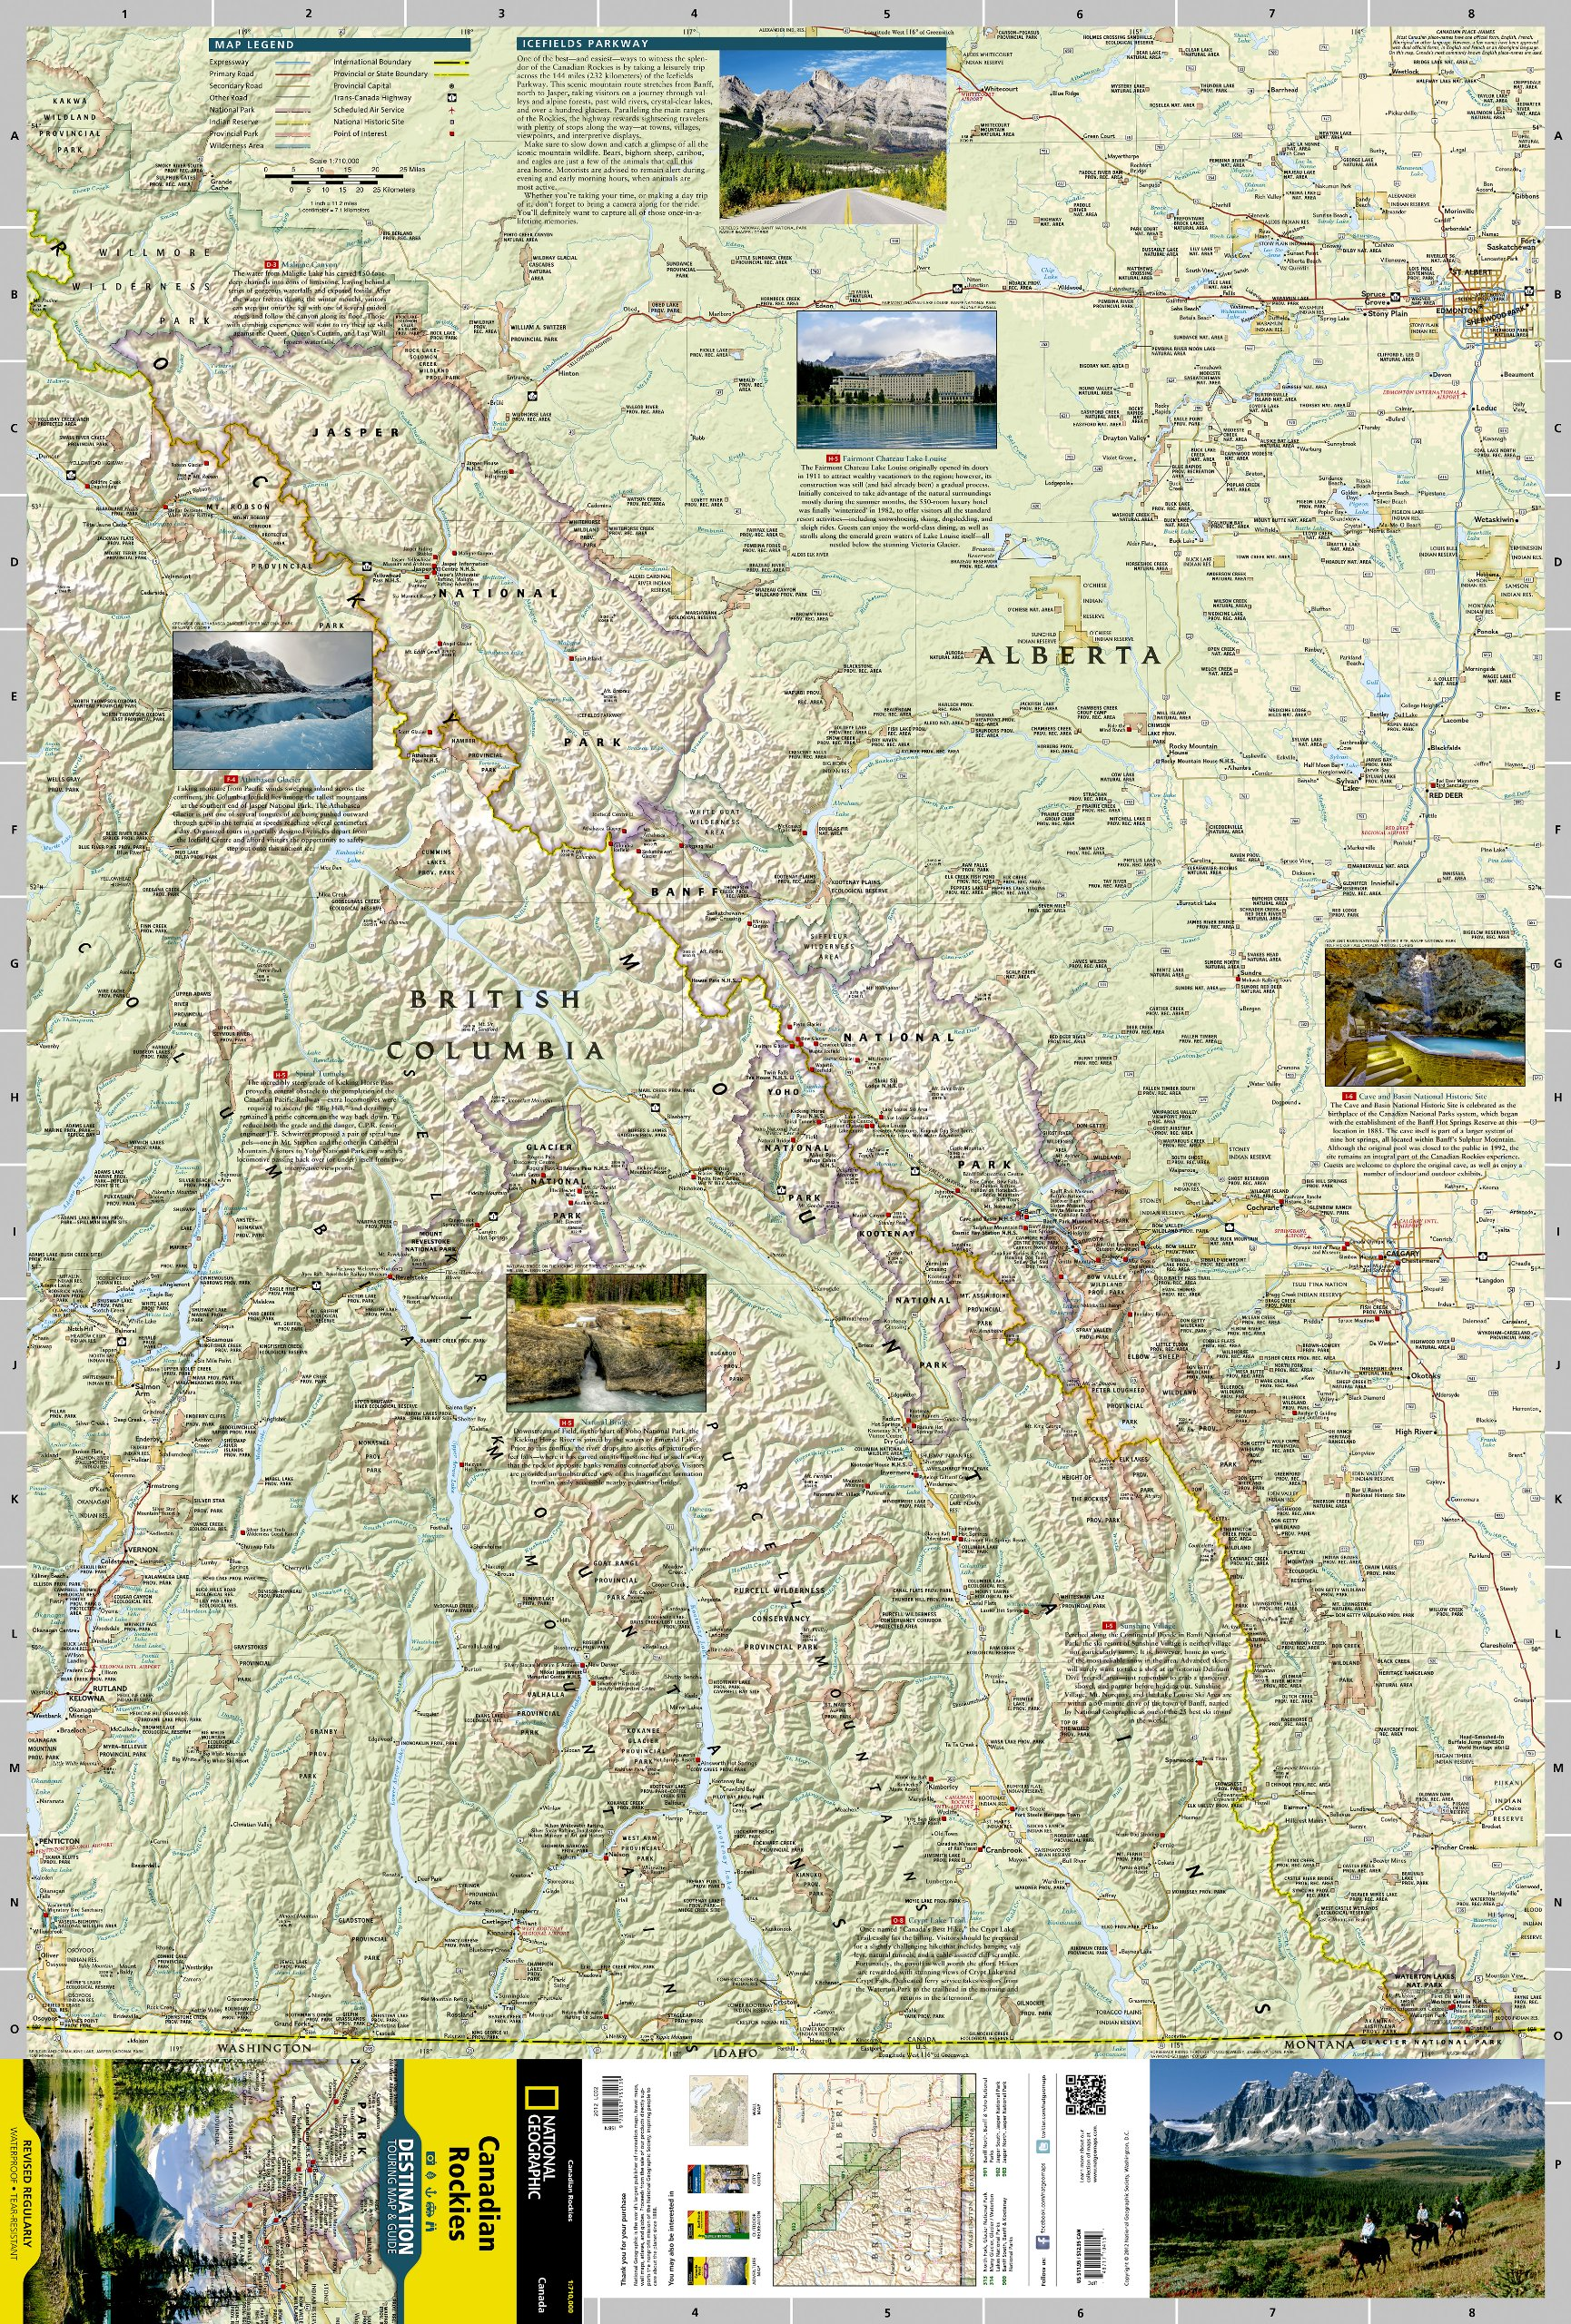 Canadian Rockies Destination Map 1:710,000 National Geographic ... on